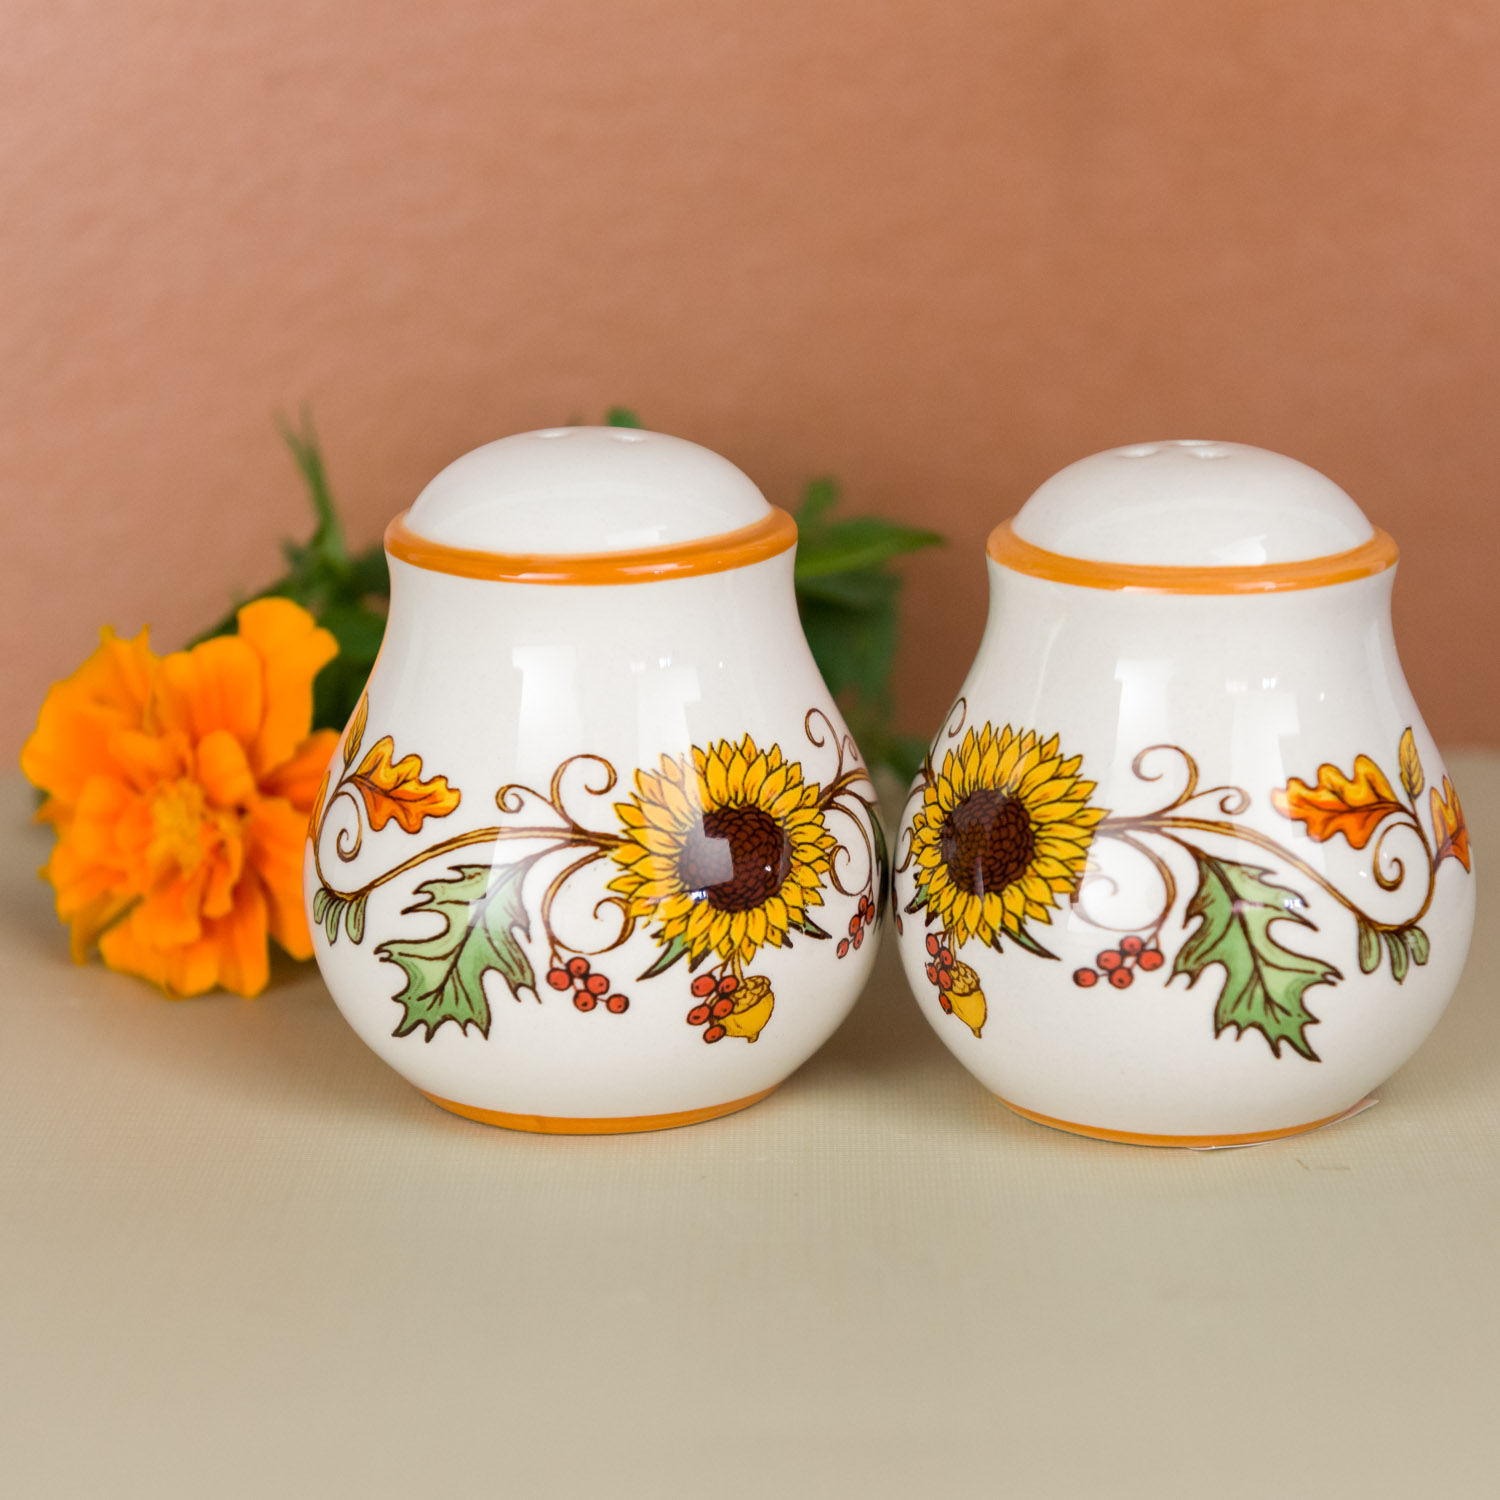 Harvest Salt and Pepper Shakers